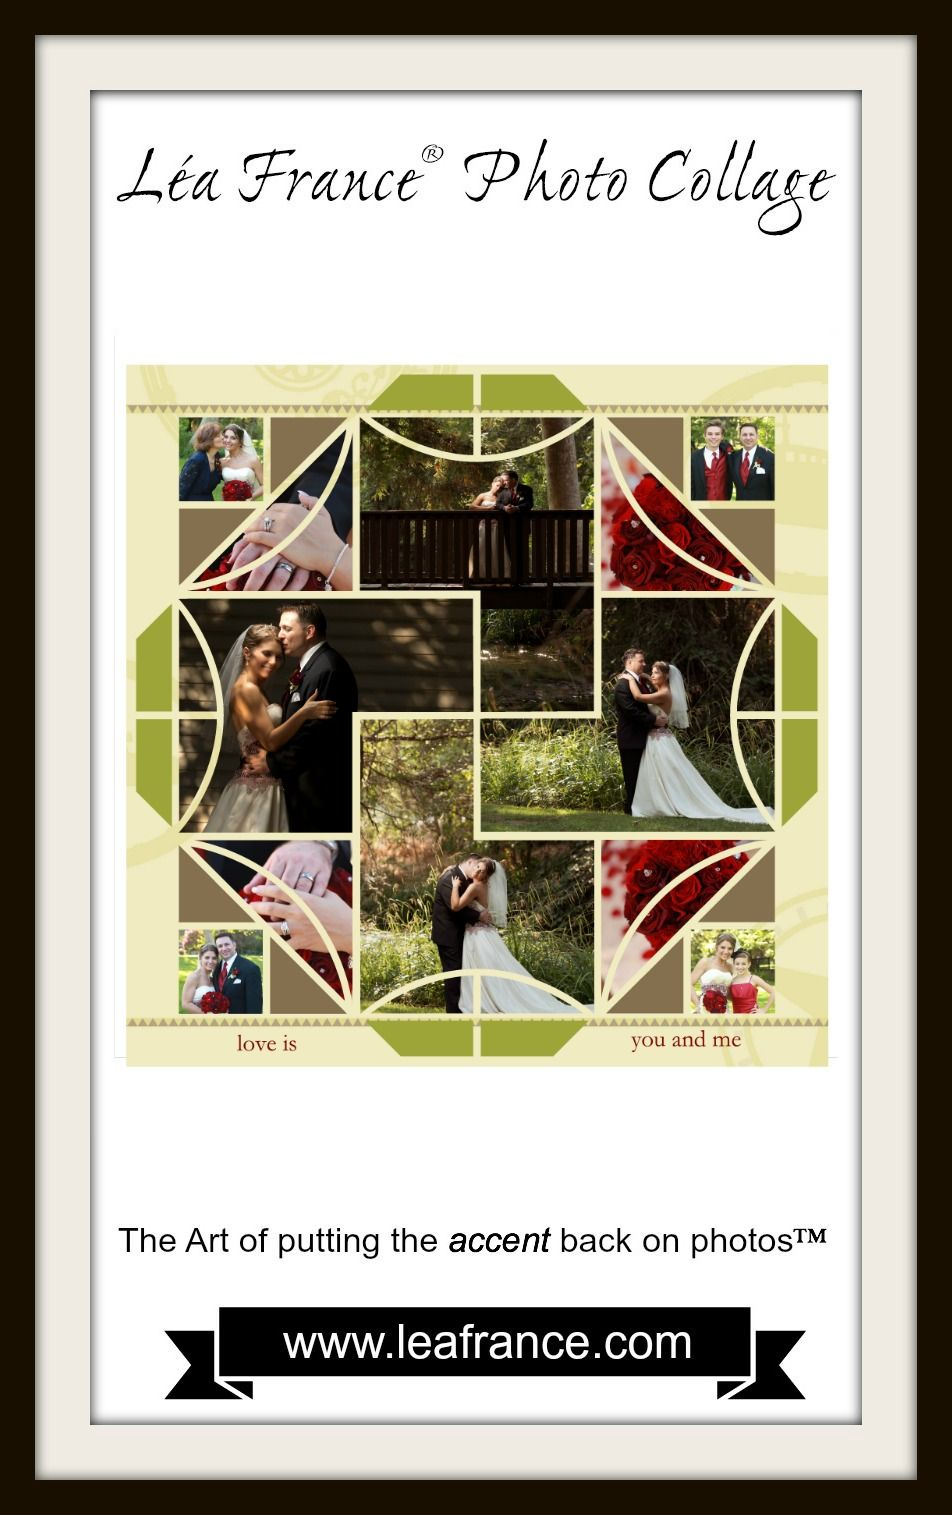 Hope all our friends had a great weekend? Here's something greater! George and Monika lovely wedding documented in a fantastic Digital Stained Glass page! Comments anyone? #LeaFrance #Scrapbooks